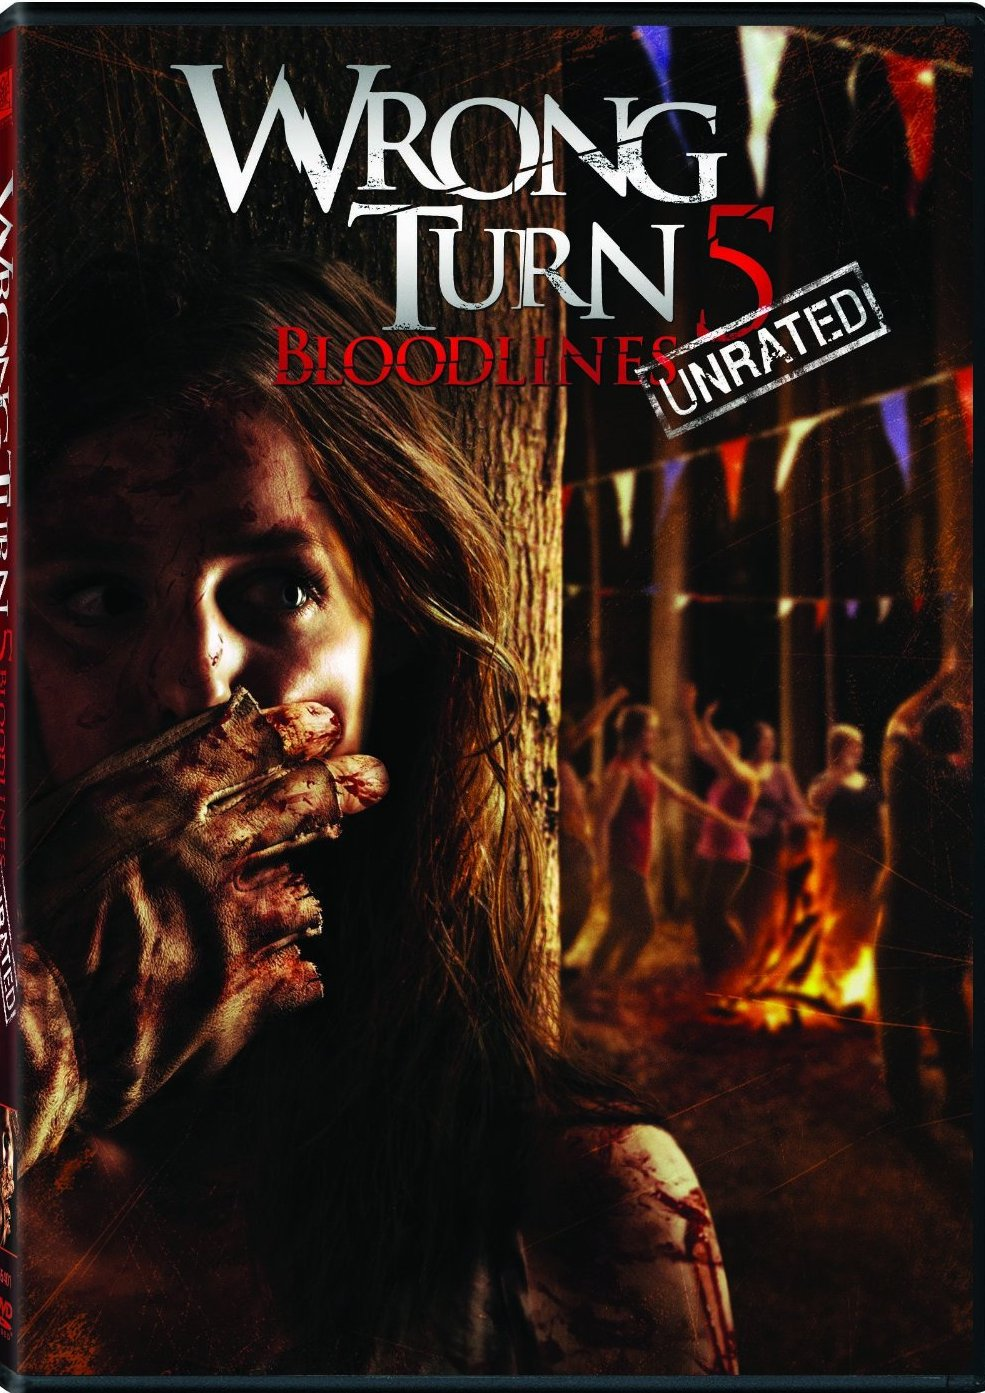 brien director of wrong turn 3 and writer director of wrong turn